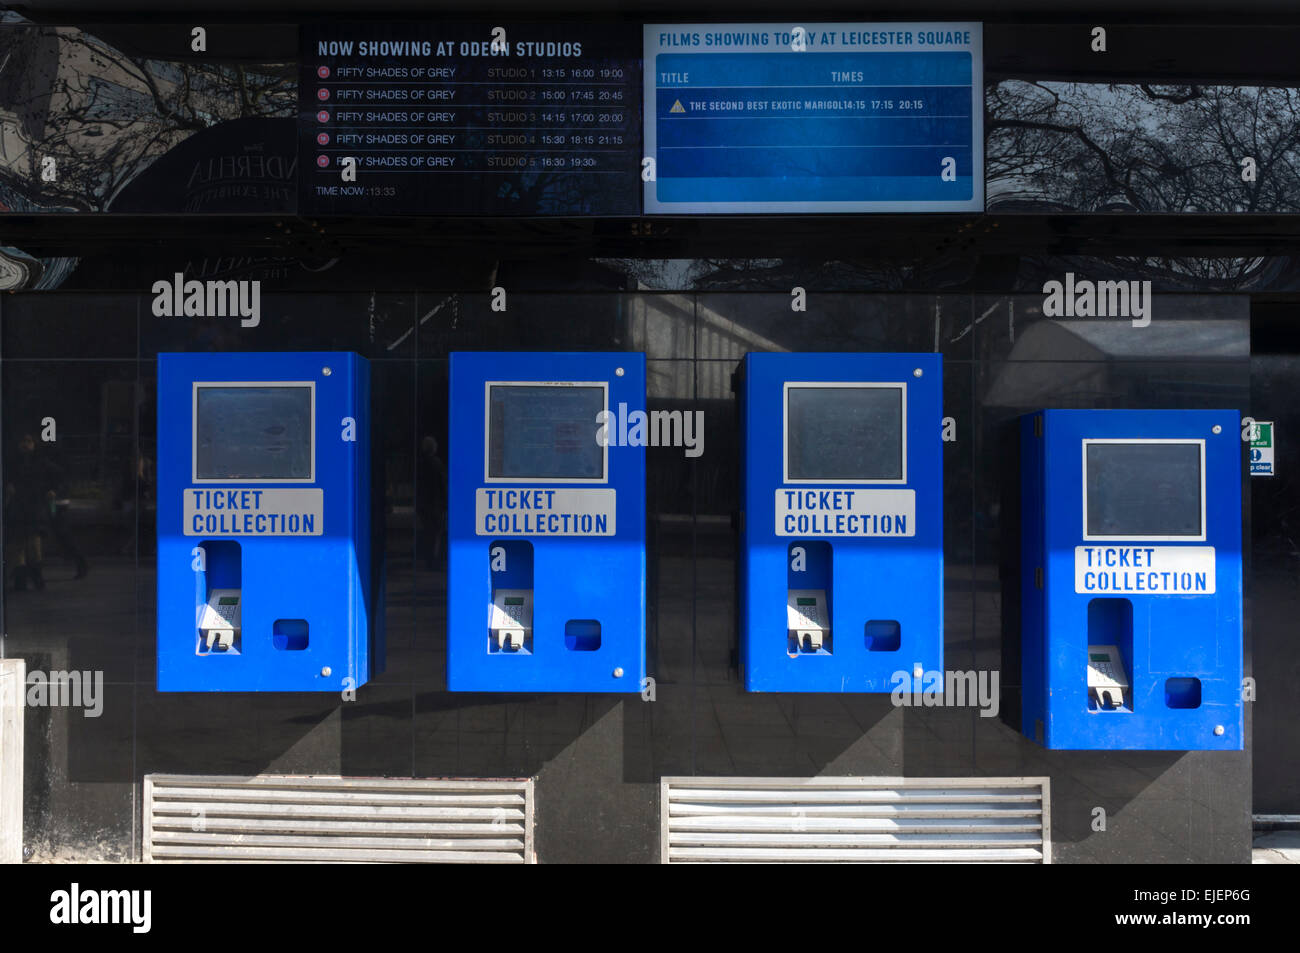 Automatic ticket collection machines at the Odeon Leicester Square cinema. - Stock Image